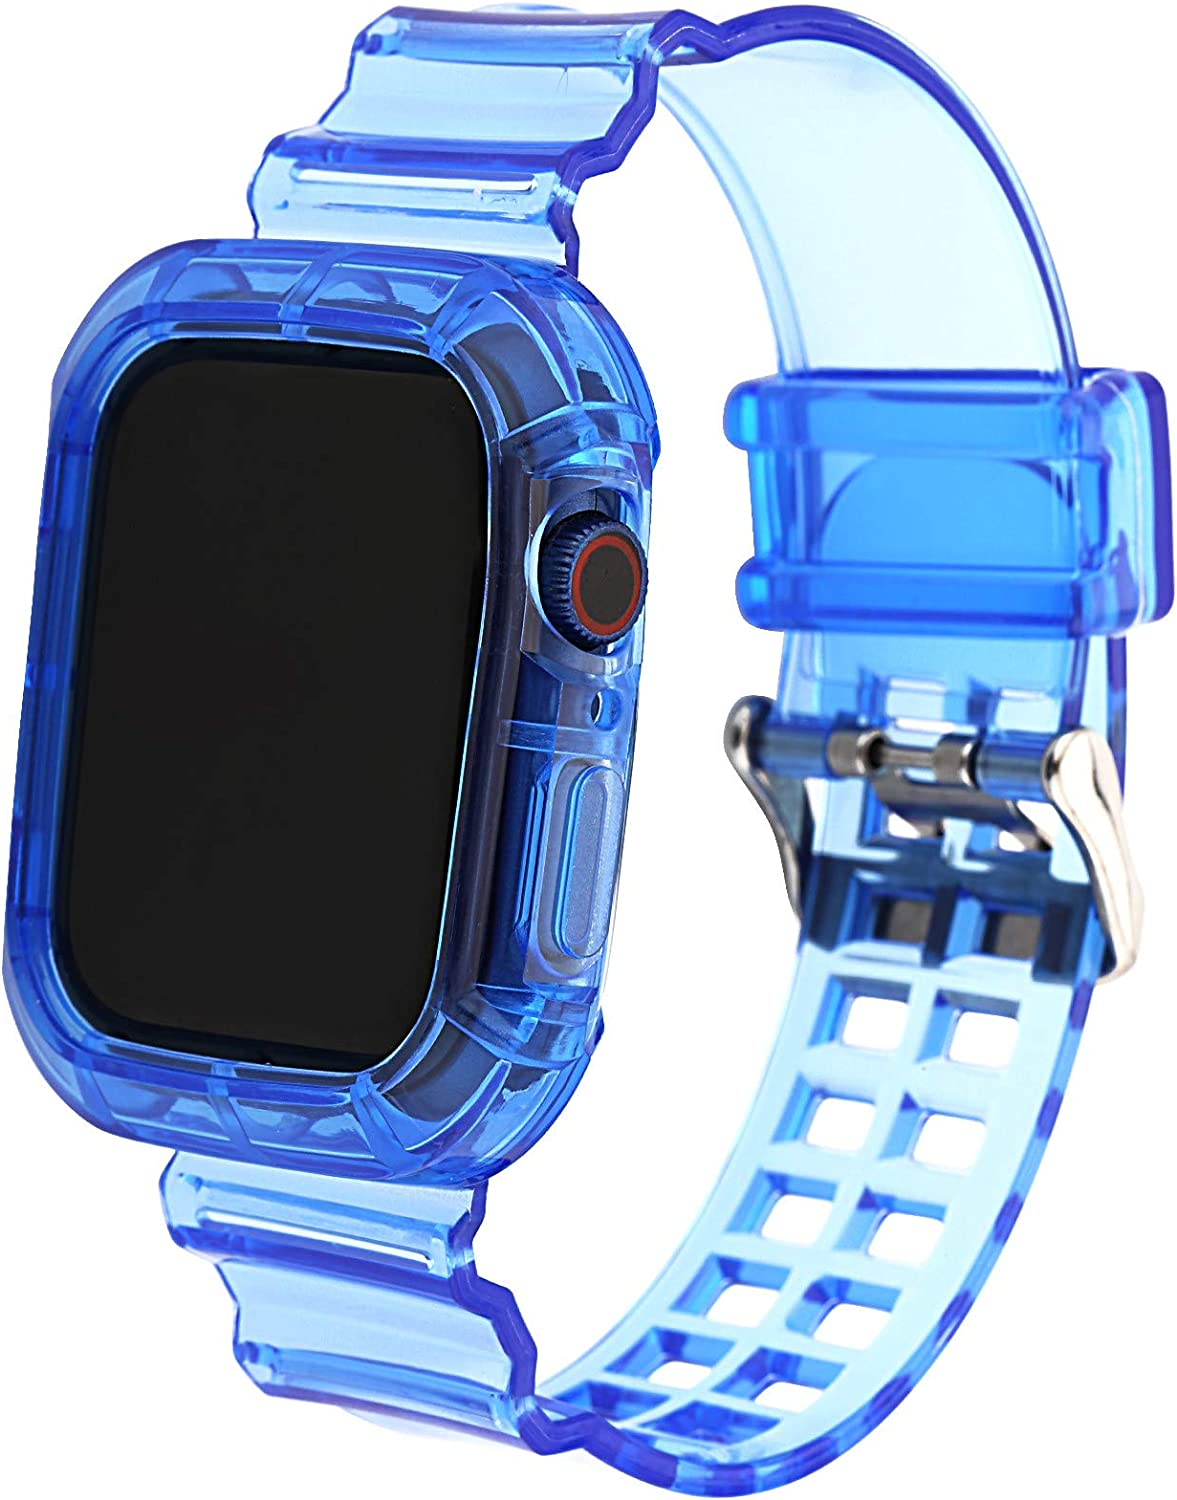 Greaciary Compatible for Apple Watch Bands Case 38mm/40mm/42mm/44mm for Men & Women, Crystal Transparent Bumper Sports Wristband Bangle Strap iWatch Series 5 4 3 2 1 (Blue, 42mm/44mm)